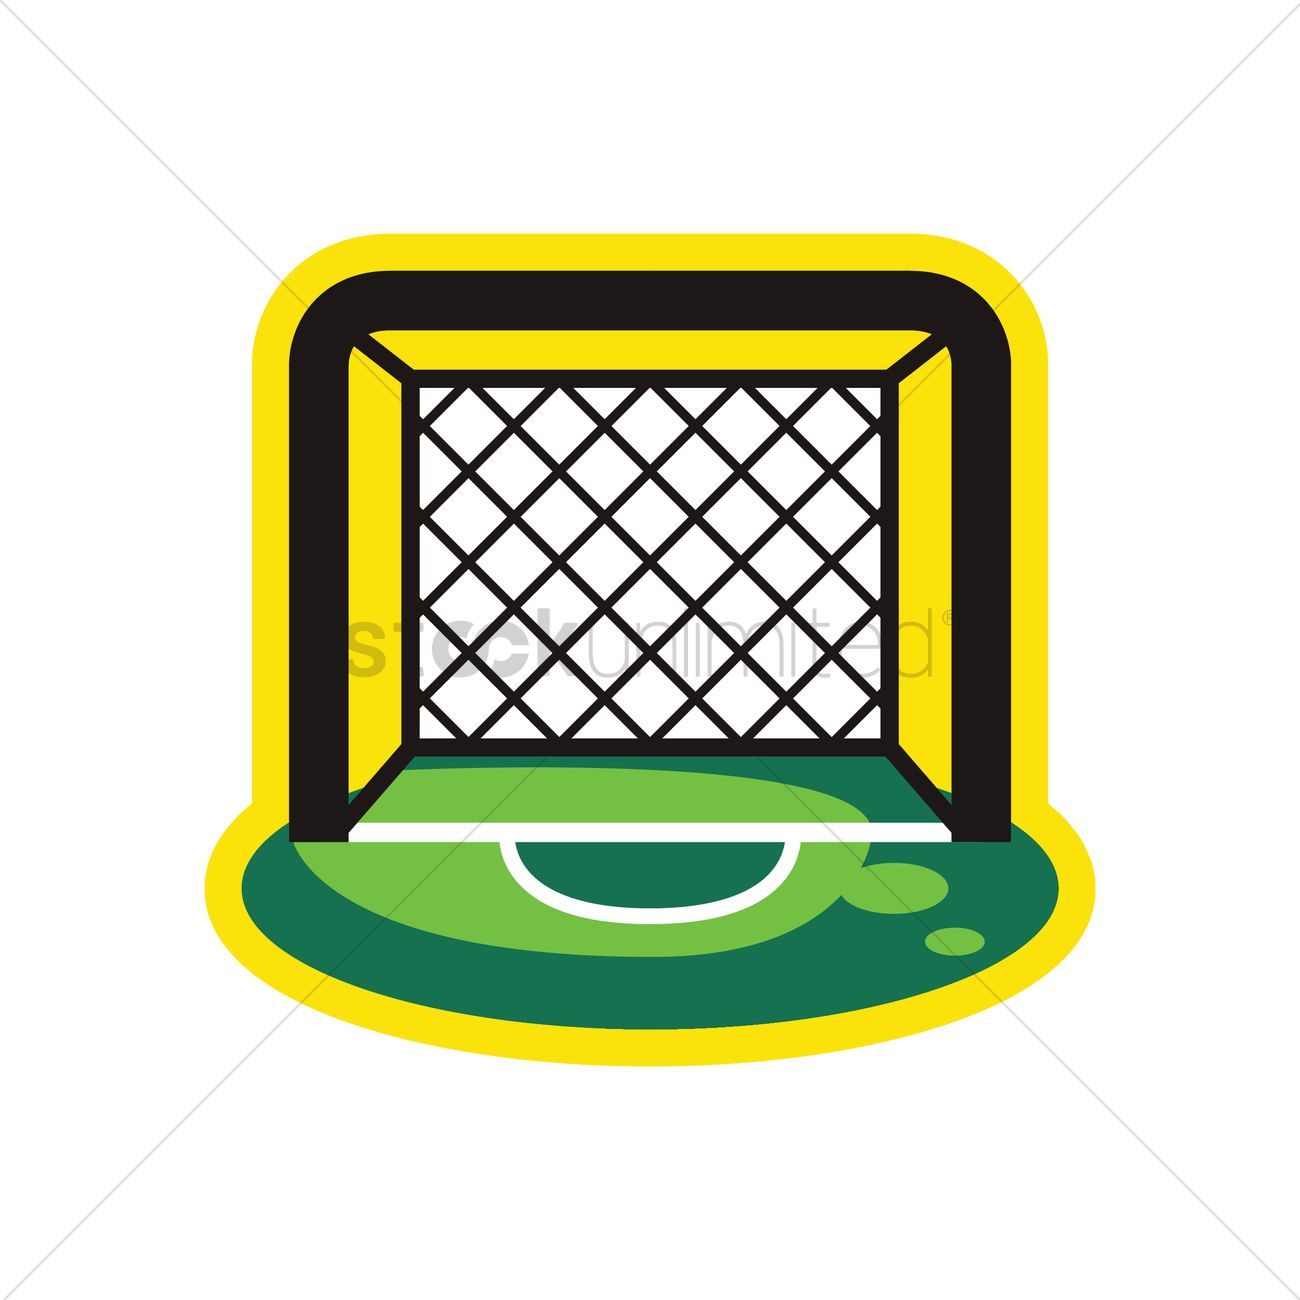 goal post icon vector image 1958482 stockunlimited rh stockunlimited com goal post clipart goal post clips